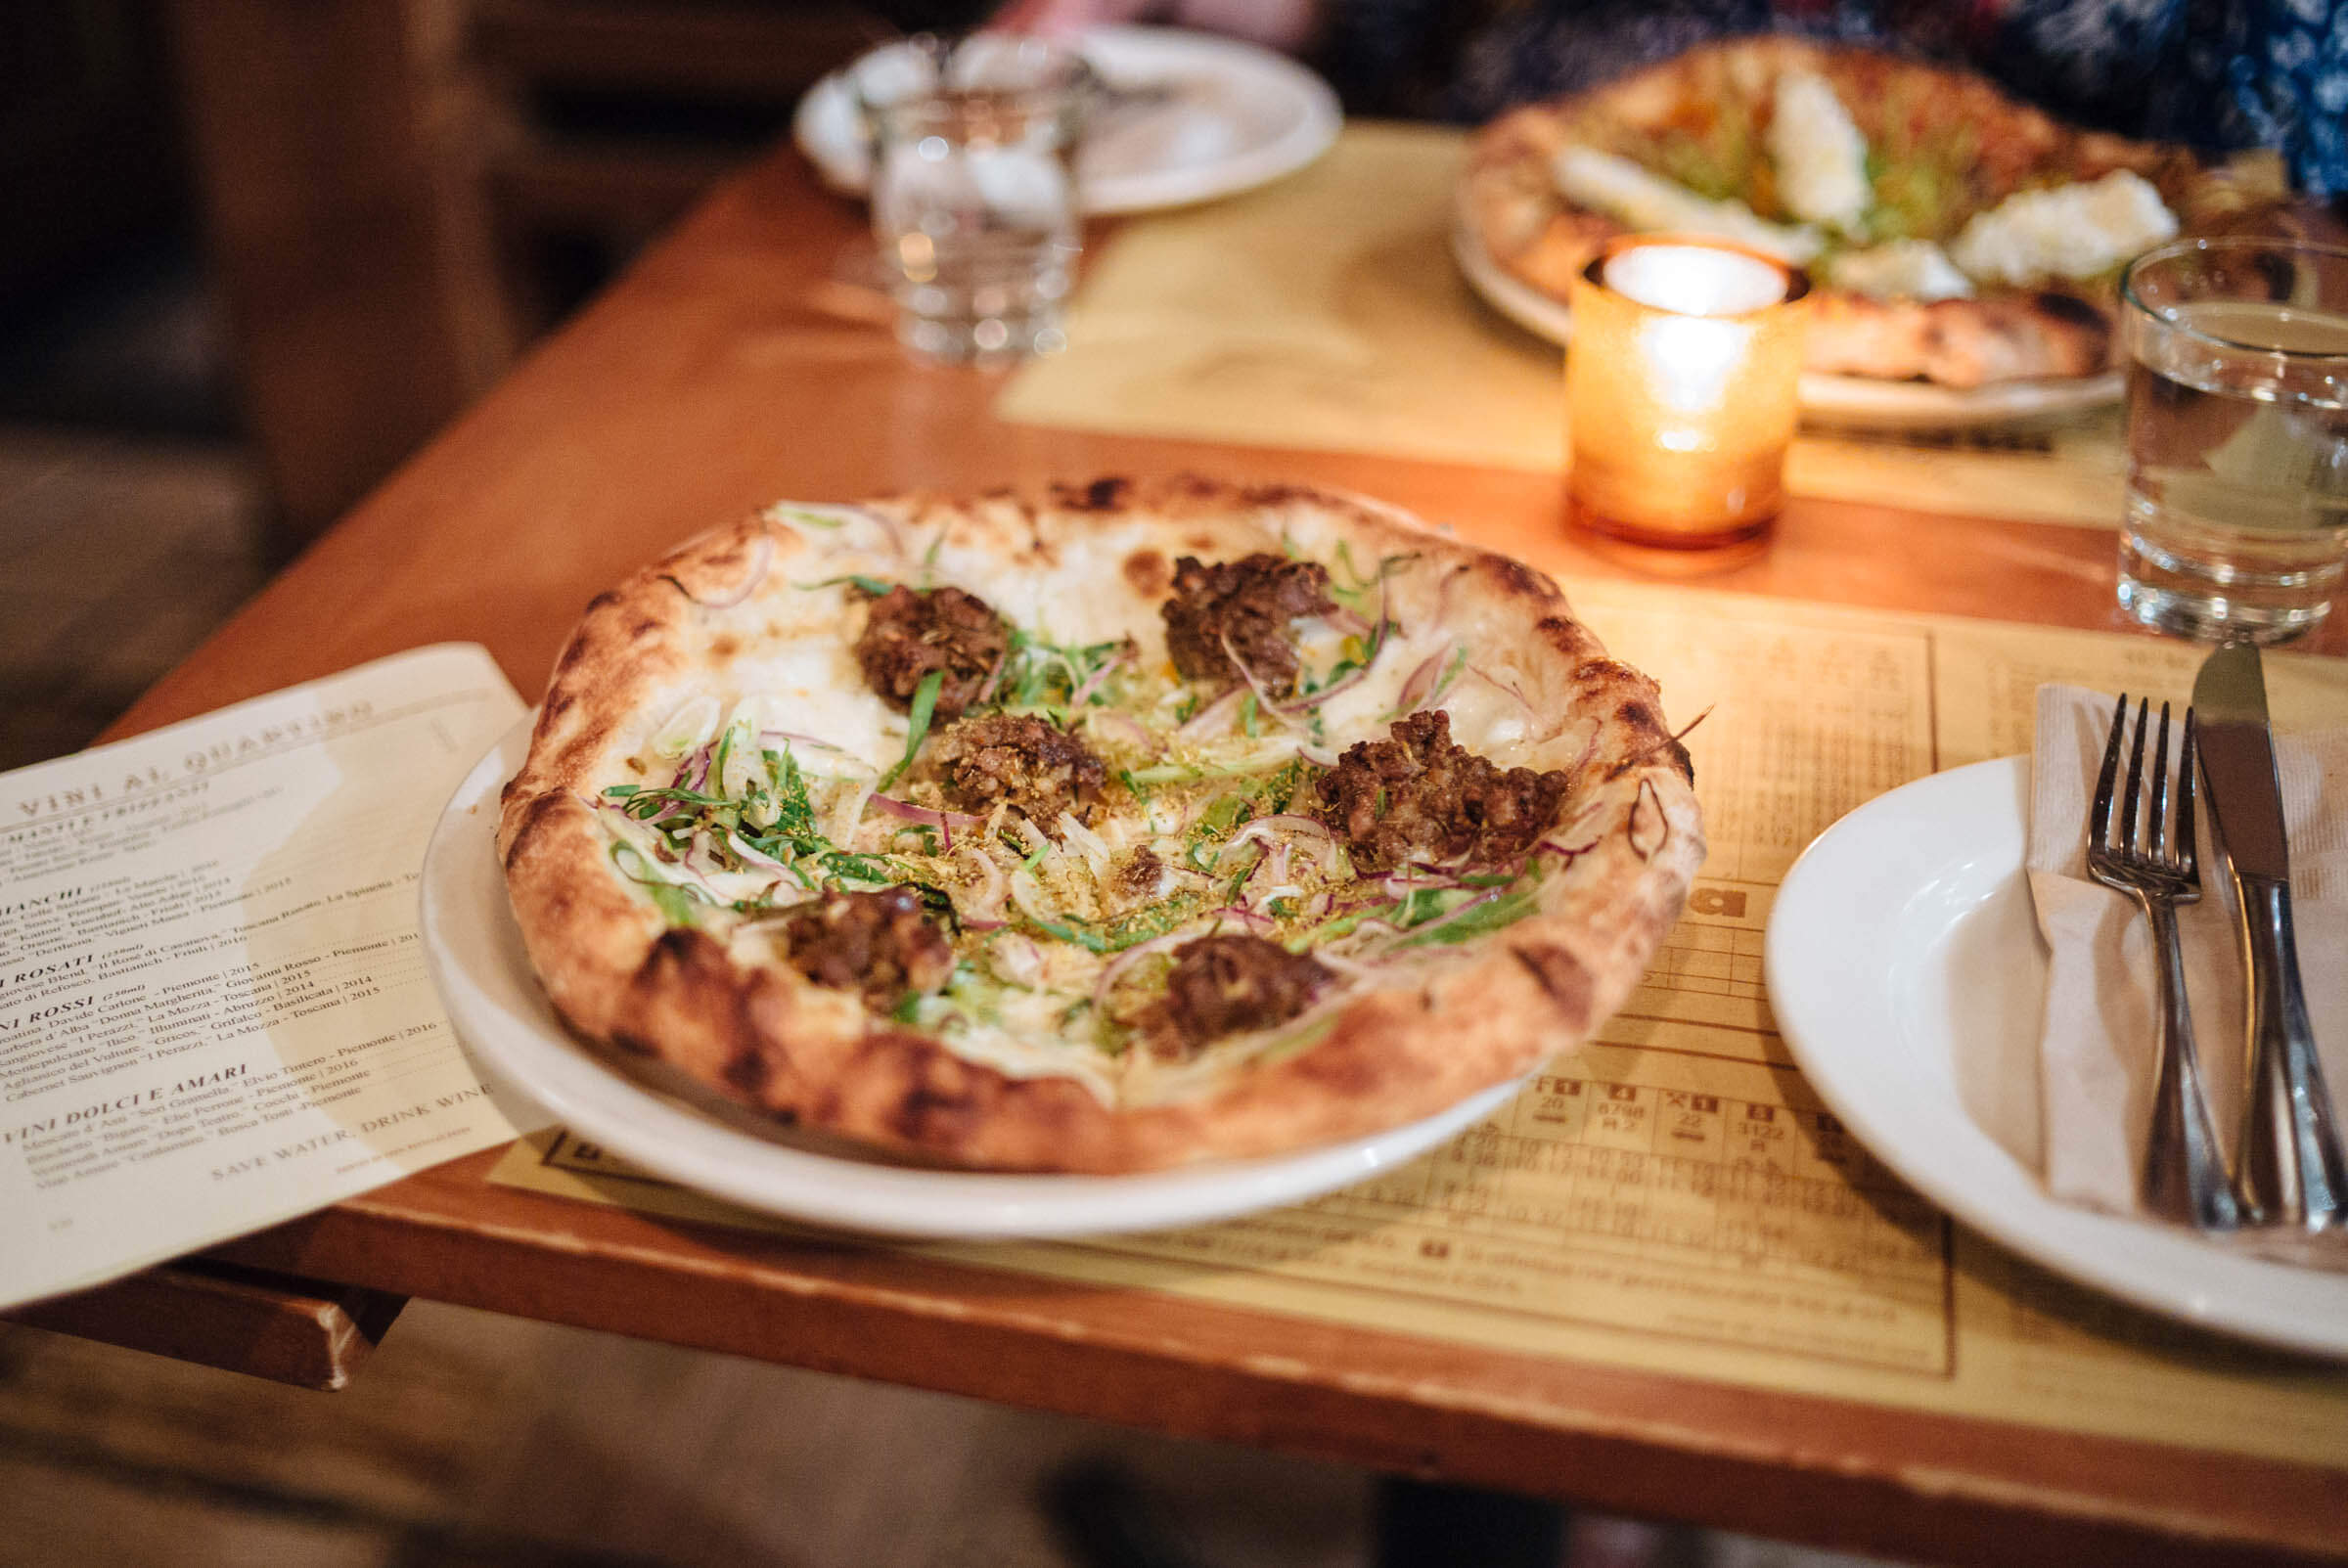 Sausage pizza at Pizzeria Mozza, West Hollywood, LA, The Taste Edit